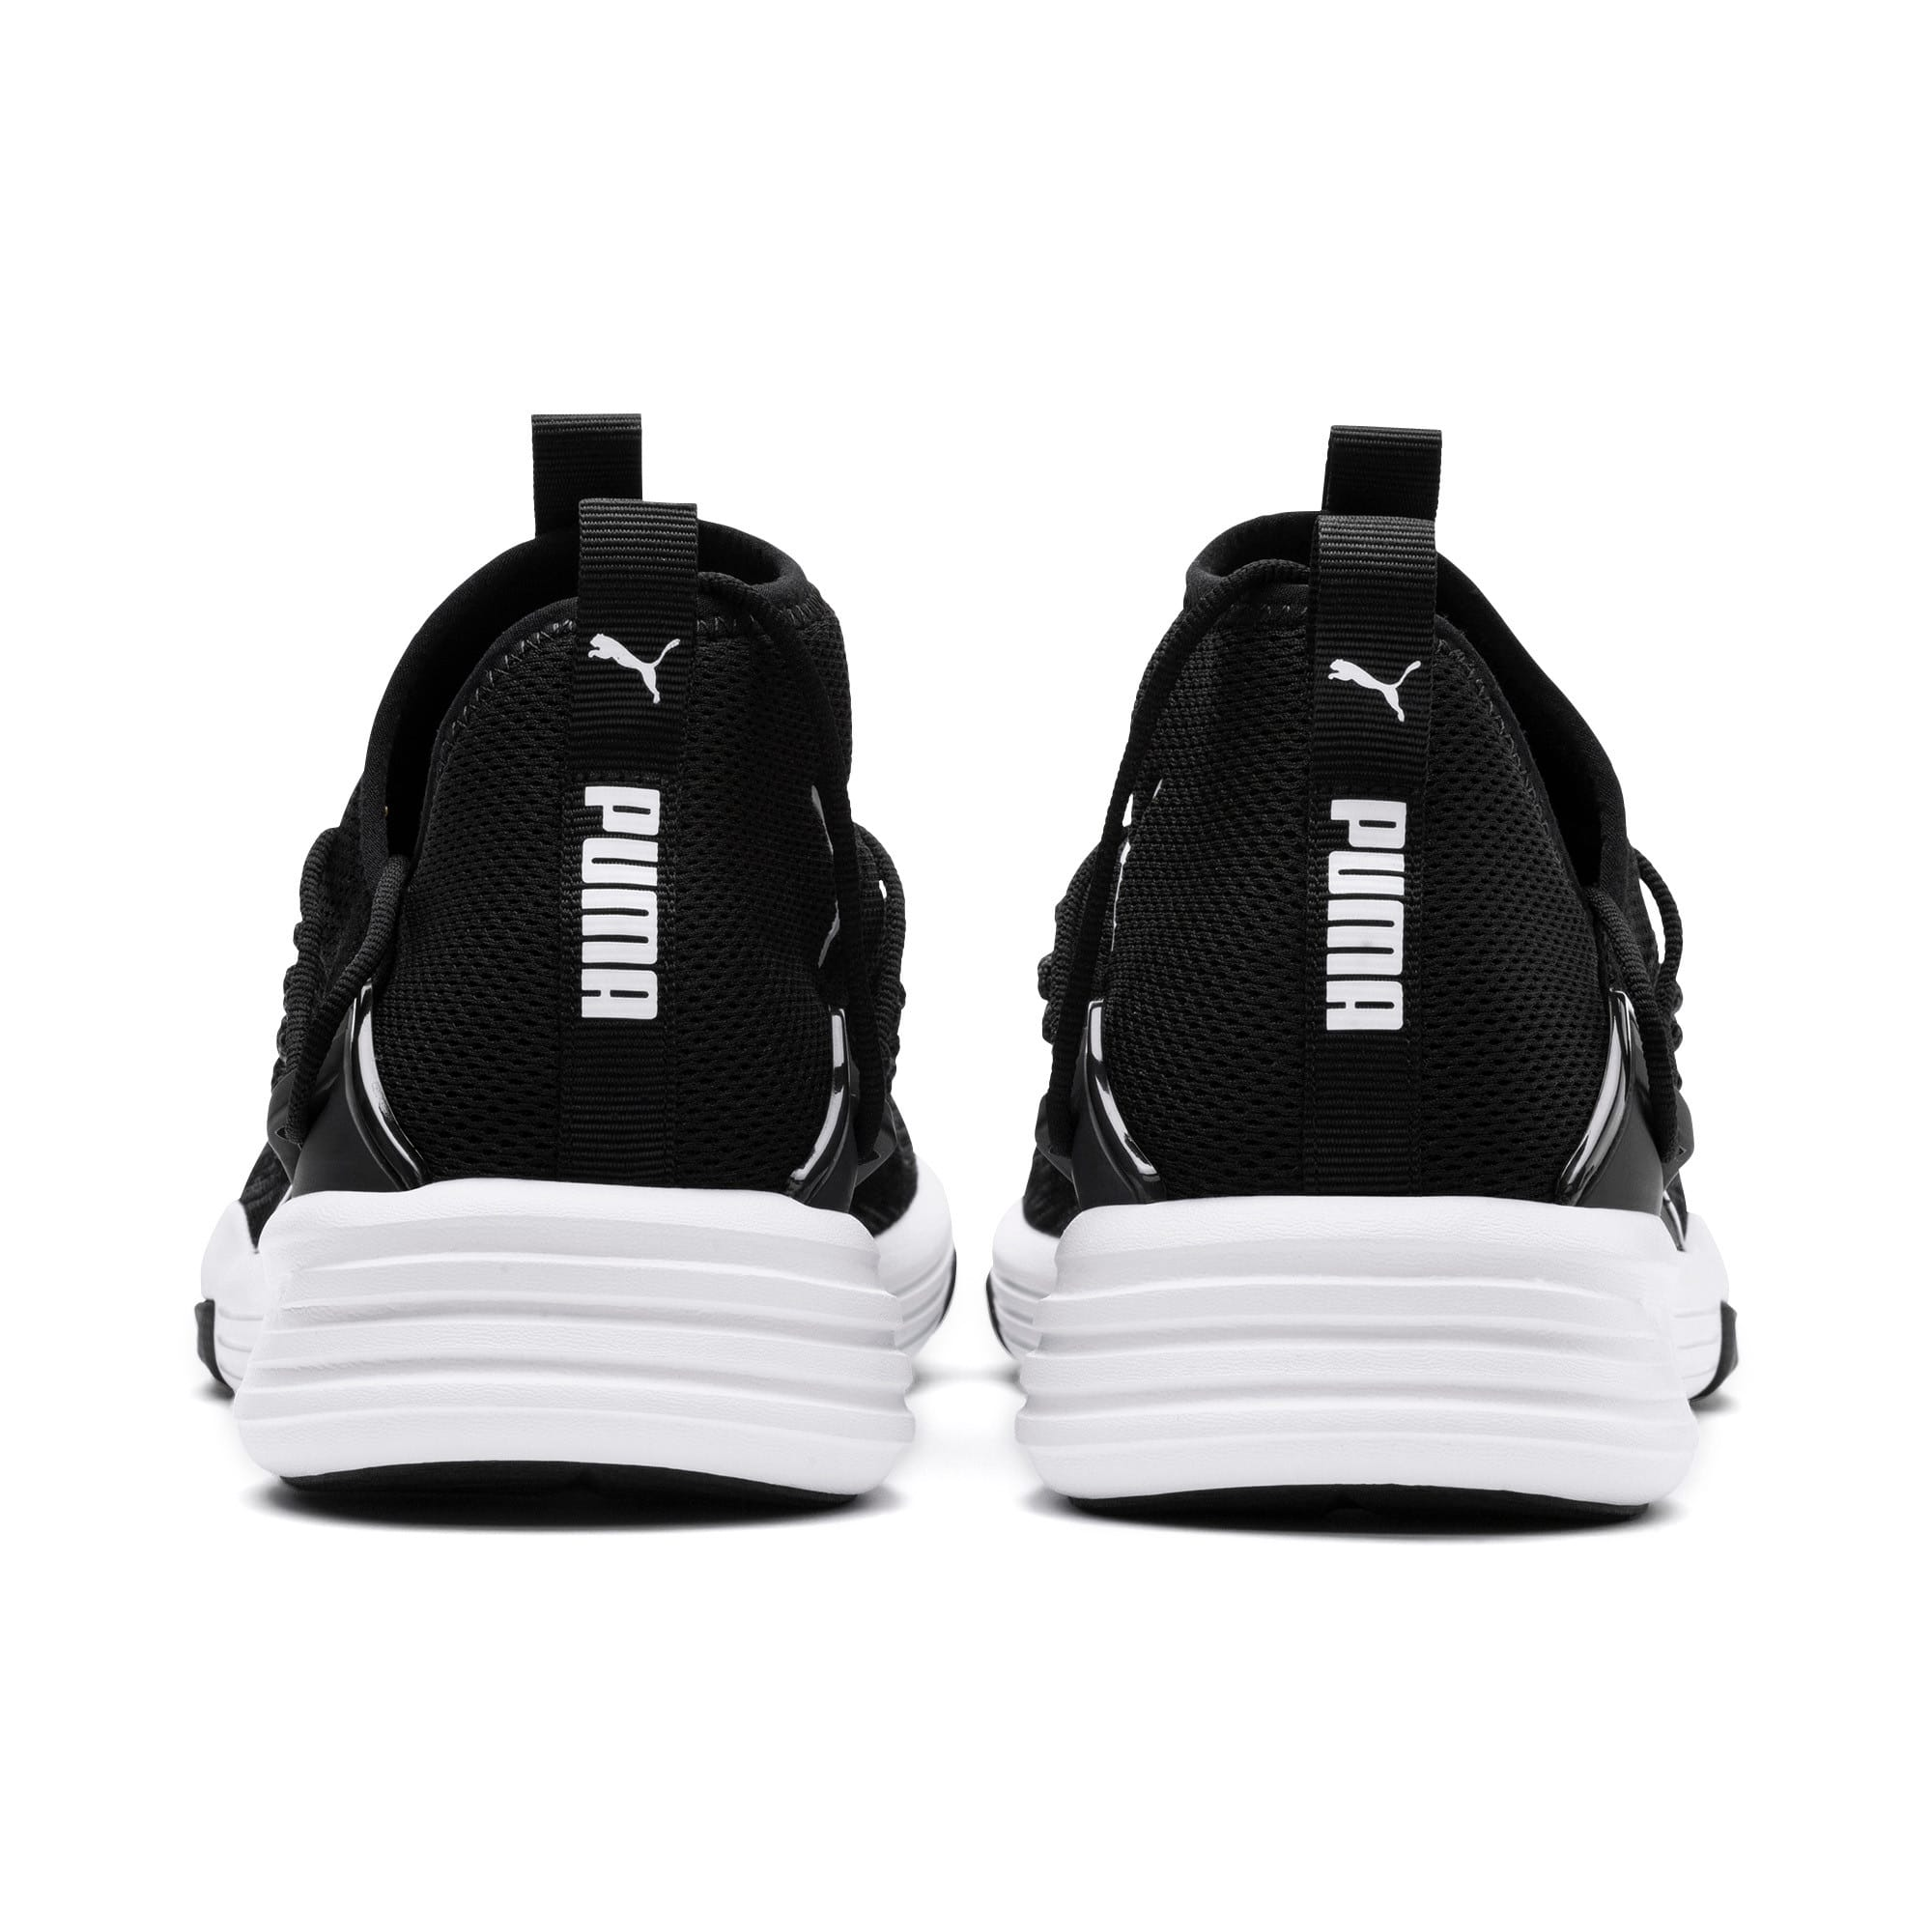 Thumbnail 5 of Mantra FUSEFIT Men's Sneakers, Puma Black-Puma White, medium